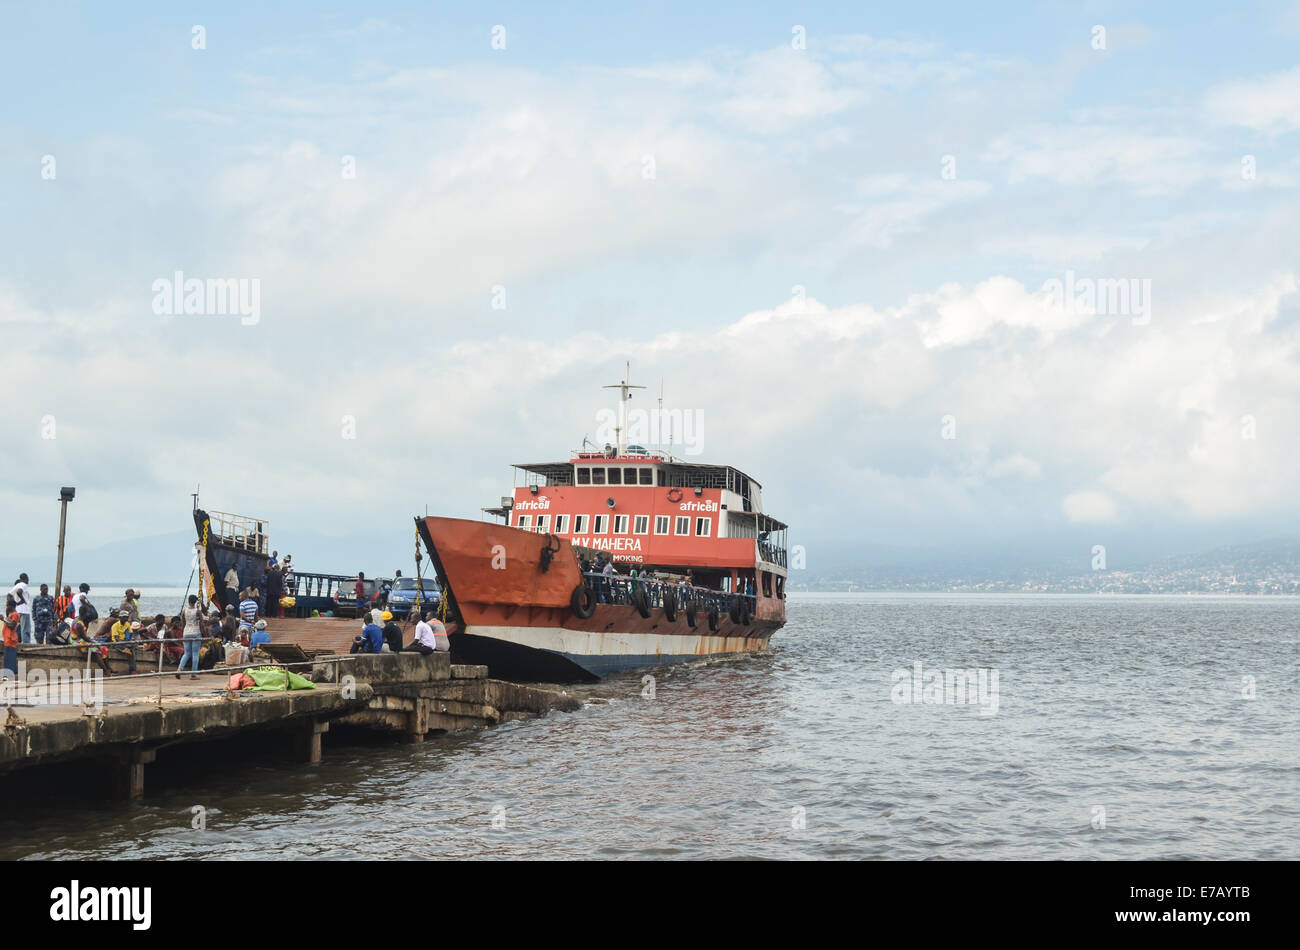 Lungi-Freetown ferry that links the capital city to the airport, Sierra Leone, Africa - Stock Image